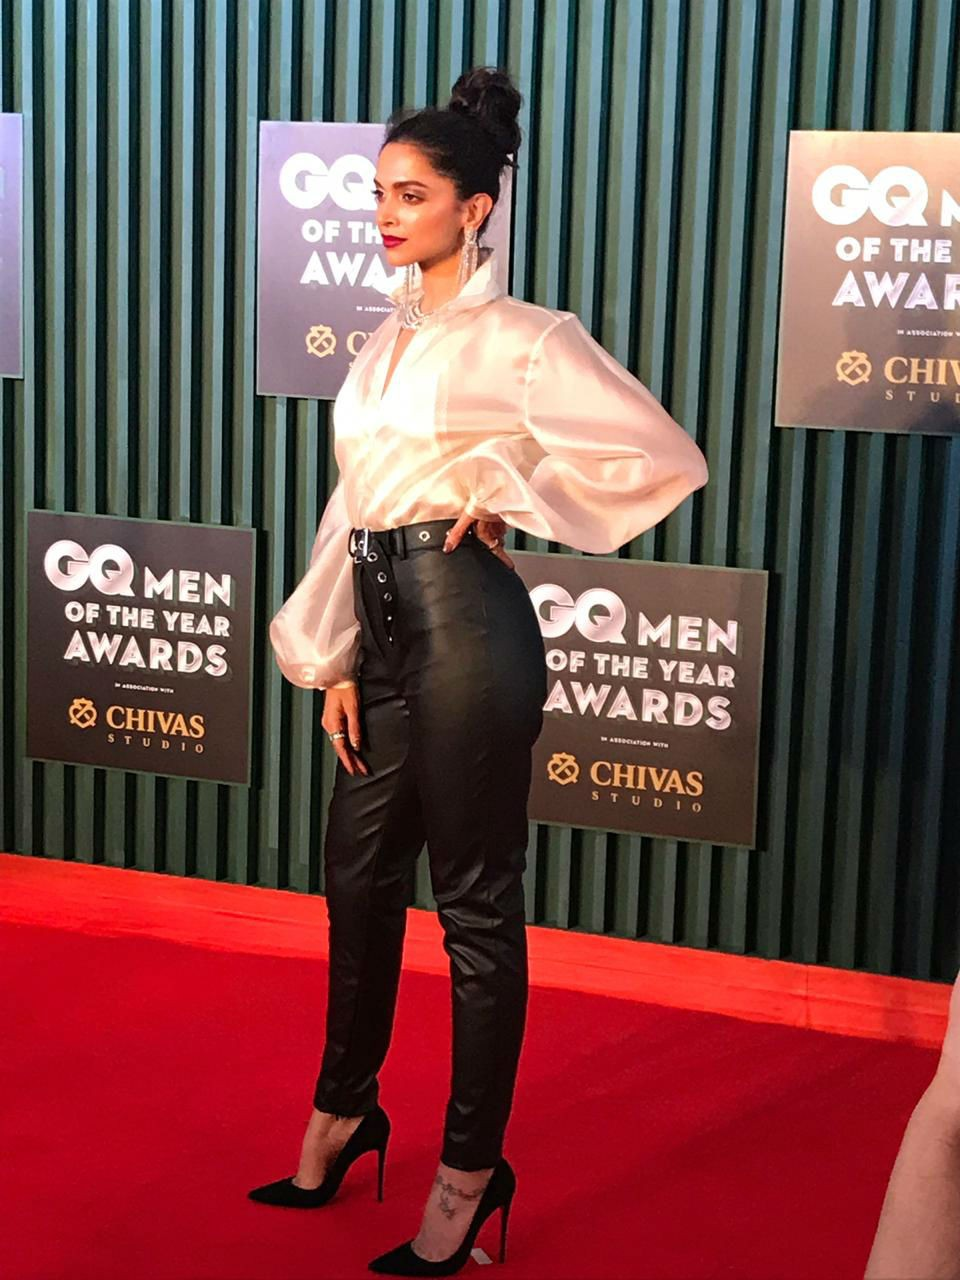 Deepika Padukone,Deepika Padukone at GQ Awards,GQ Awards,celebs at GQ Awards,Padmaavat